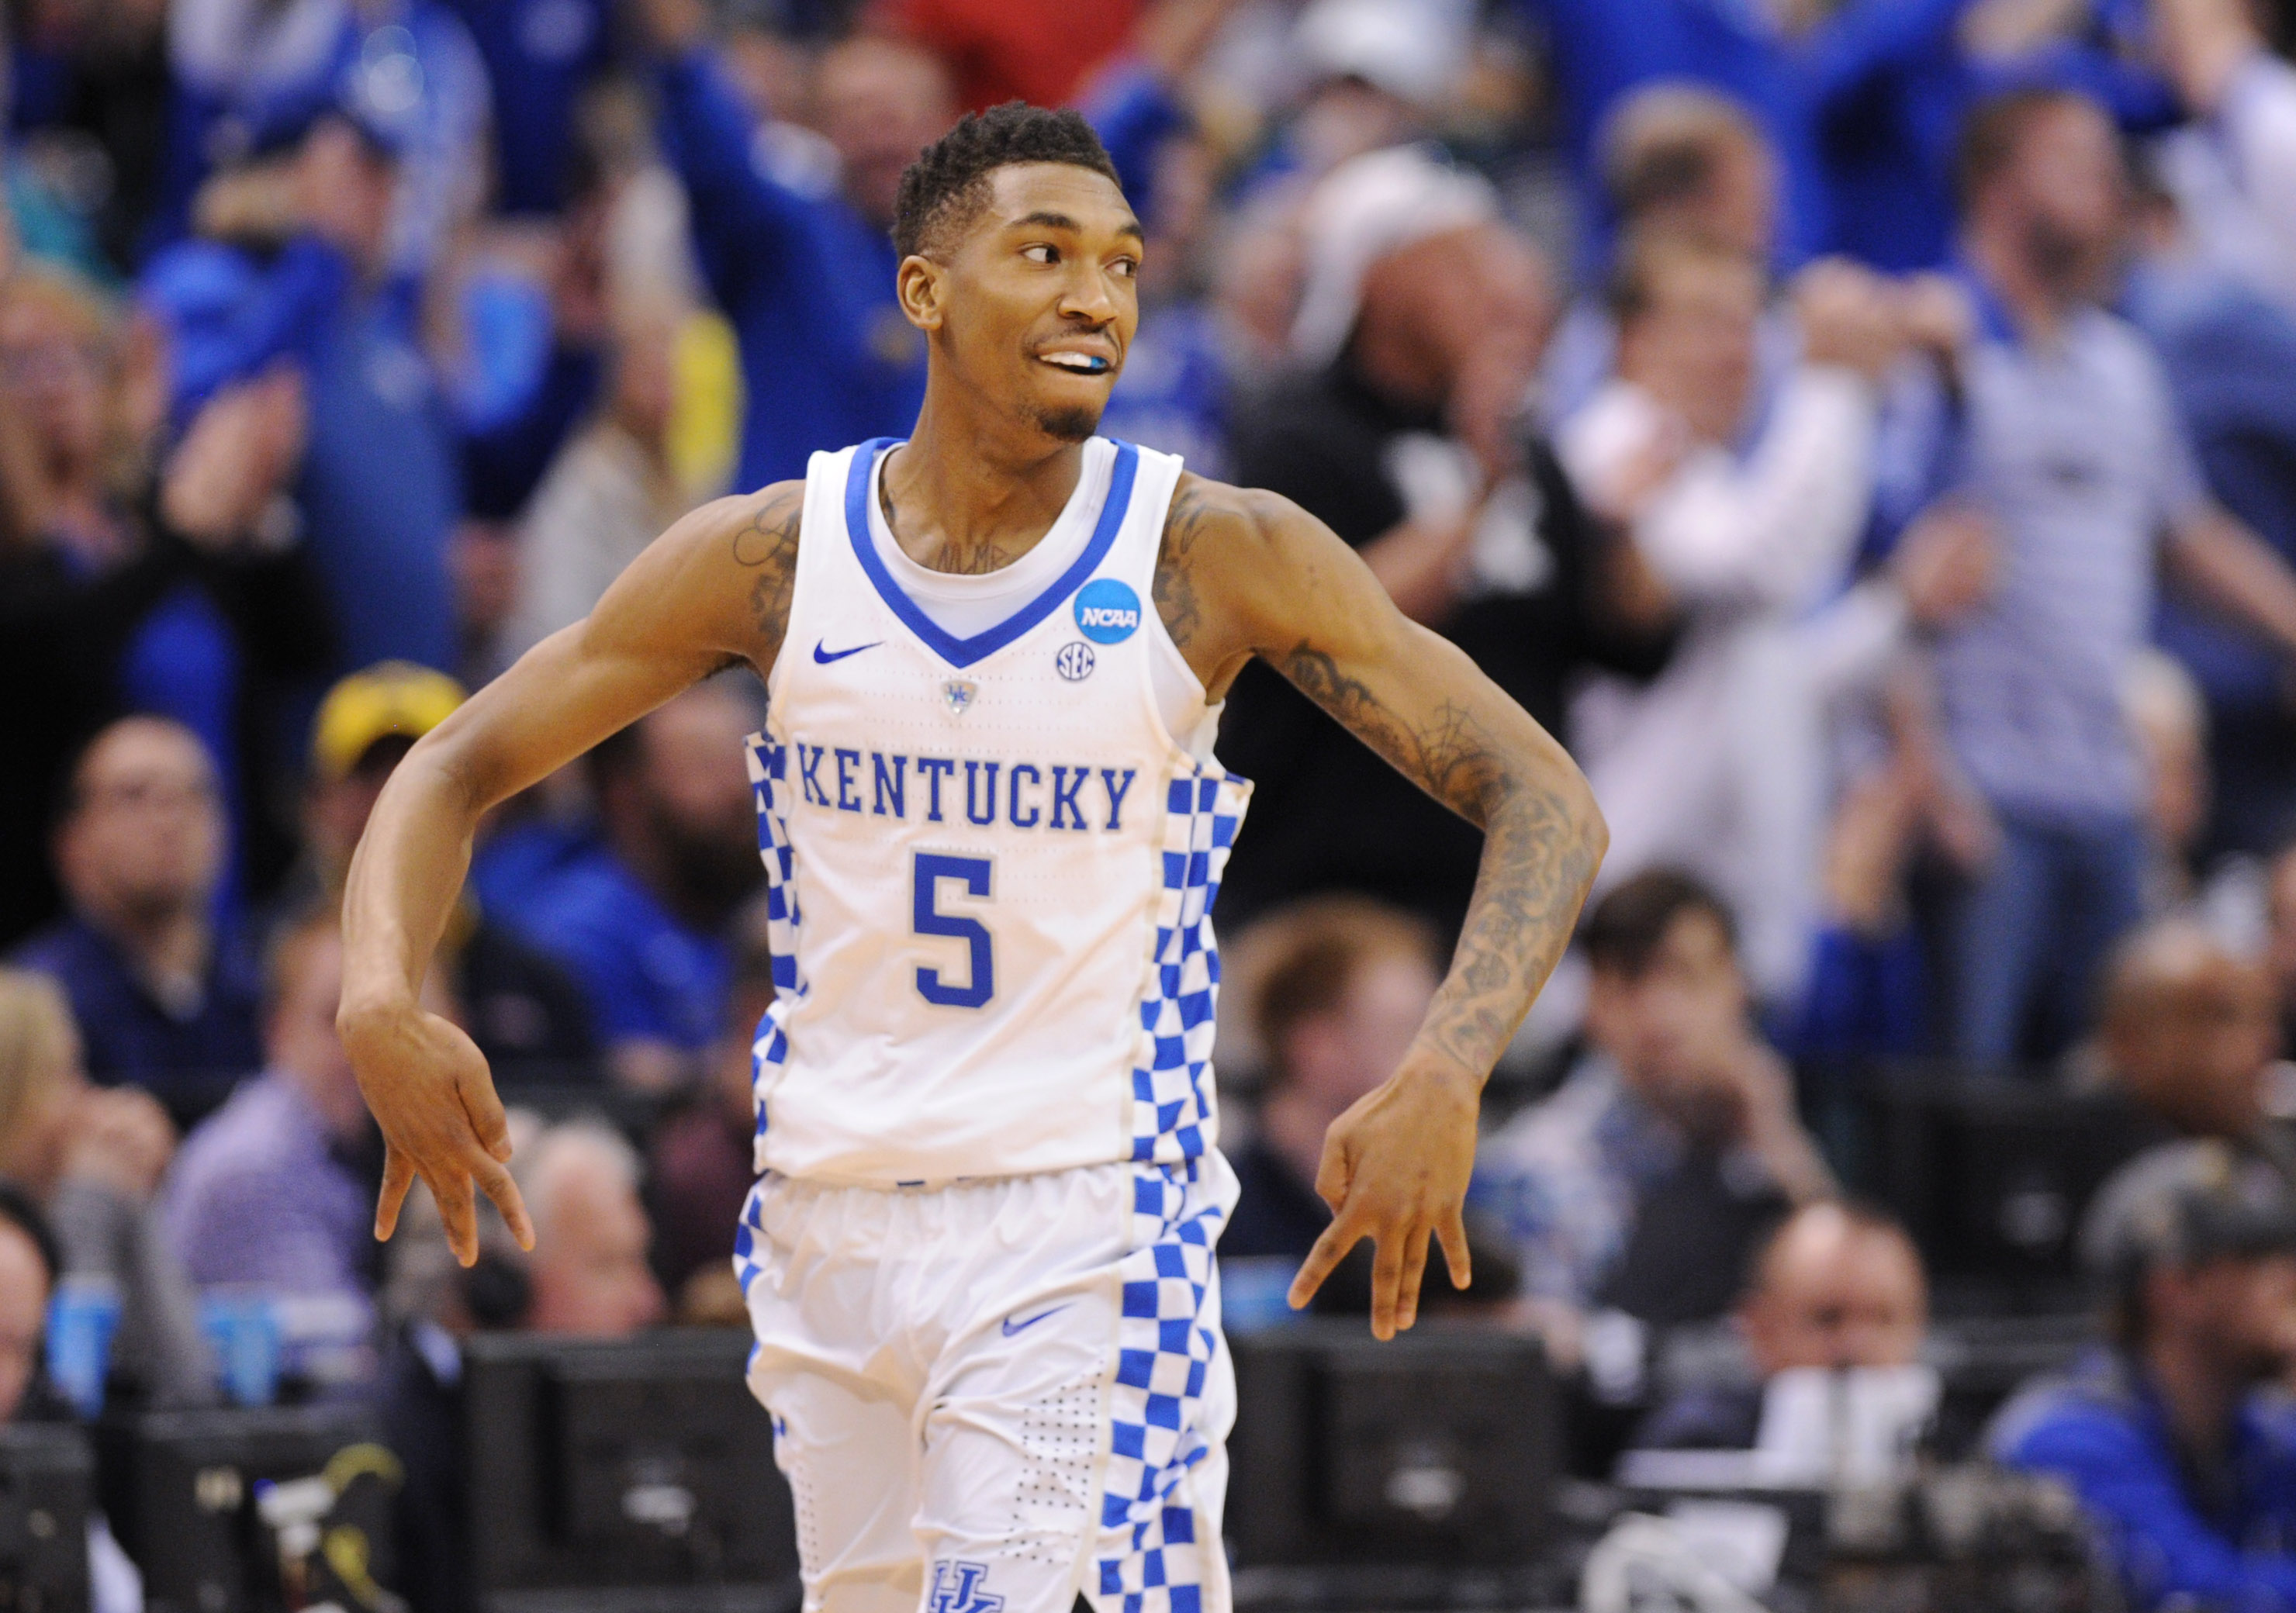 9958026-ncaa-basketball-ncaa-tournament-second-round-kentucky-vs-wichita-state-3